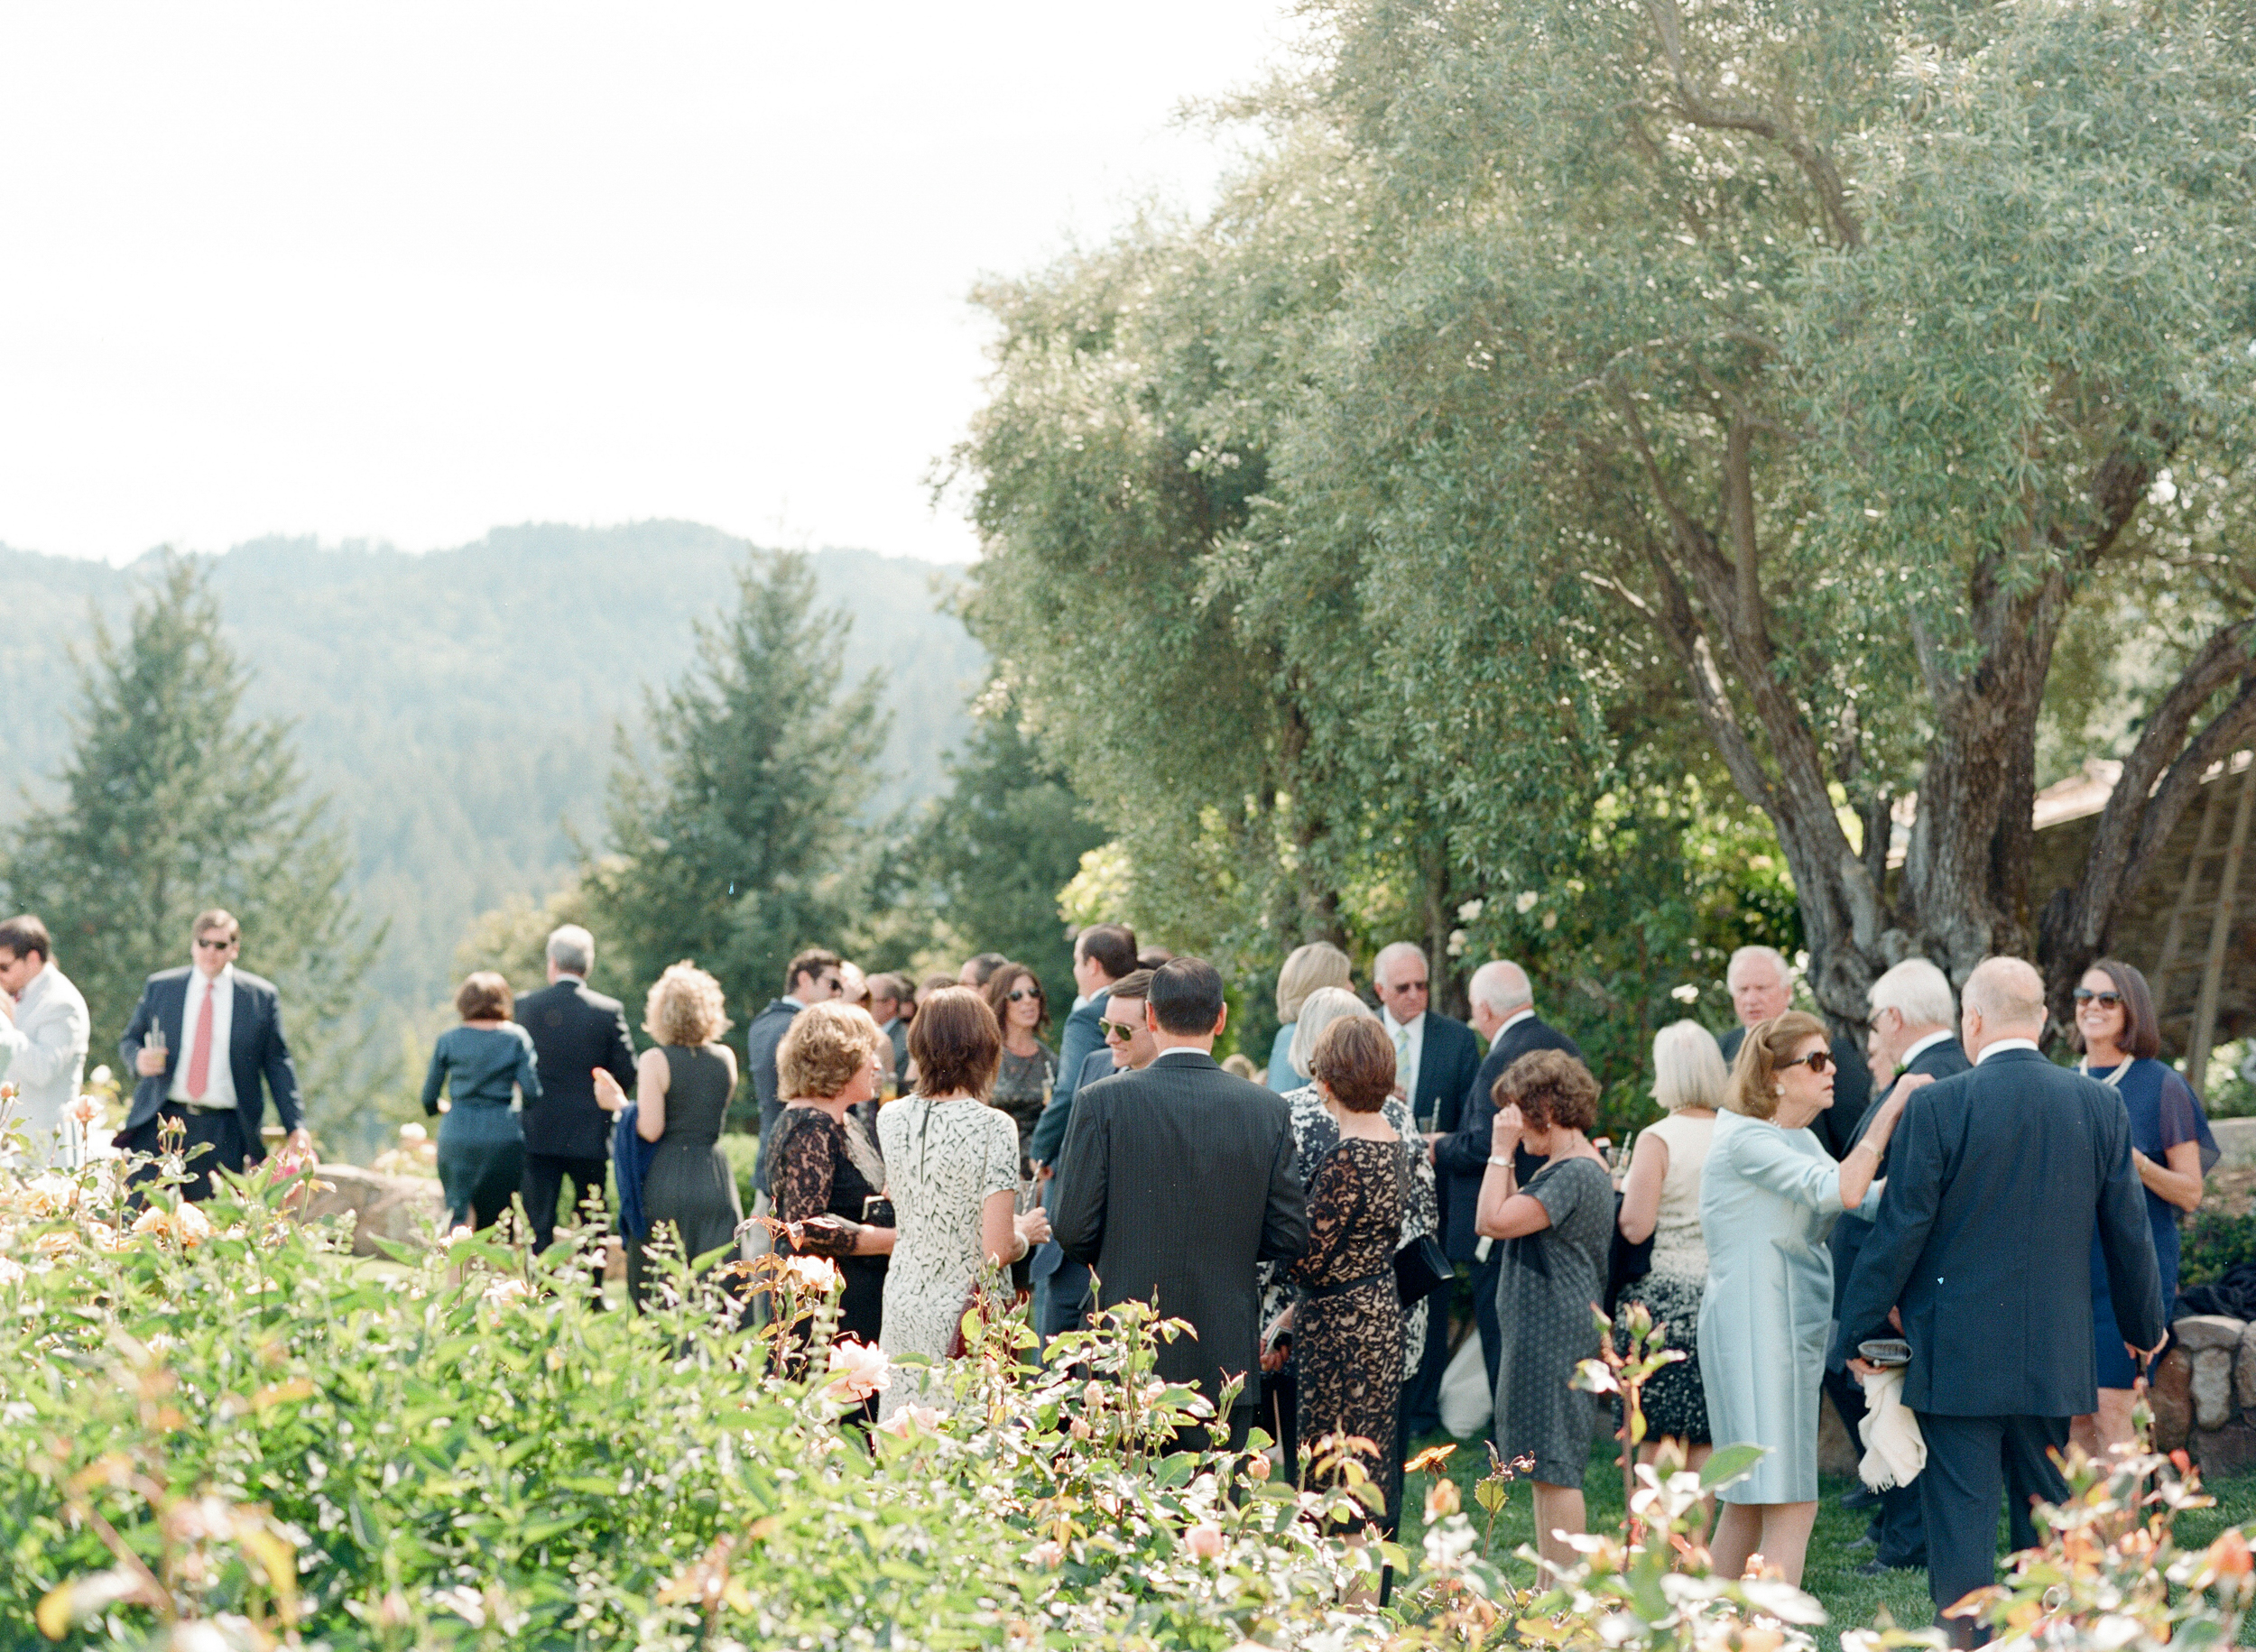 The garden setting for the outdoor reception provided an airy summer feel to the day; photo by Sylvie Gil